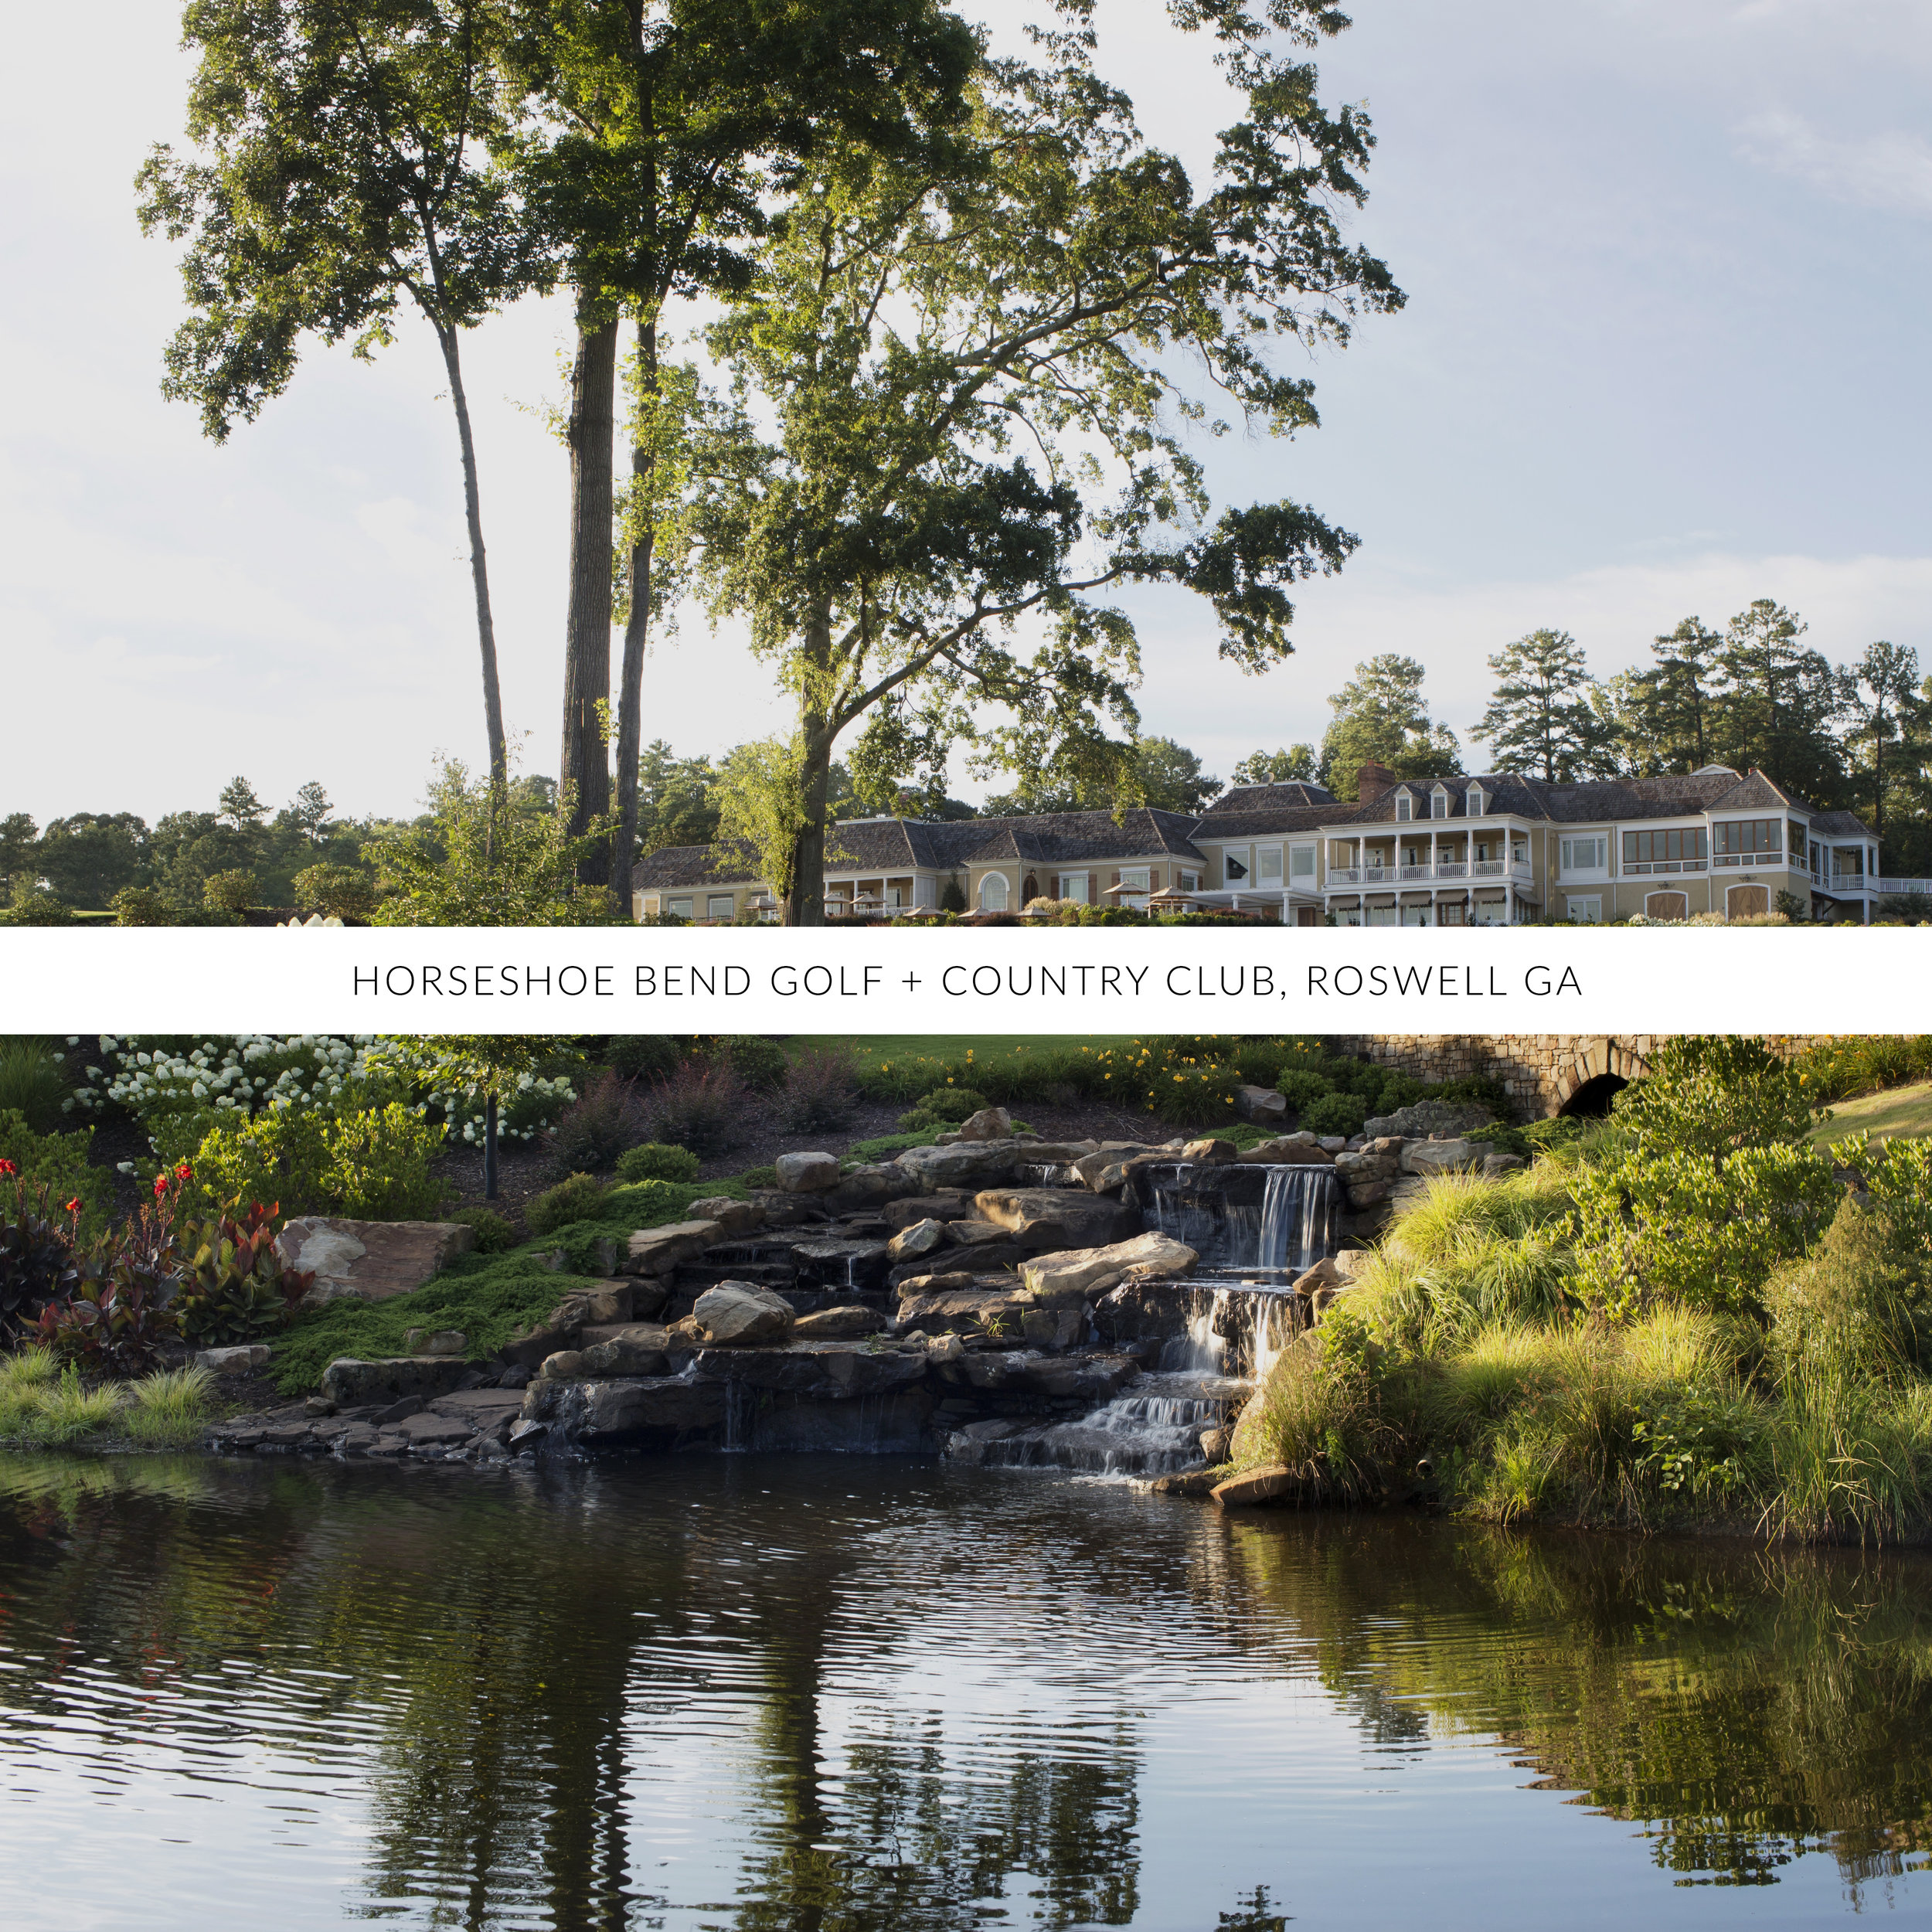 © Horseshoe Bend Golf + Country Club, Traci Rhoads Interior Design, Private Residences and Country Clubs, Alpharetta, GA